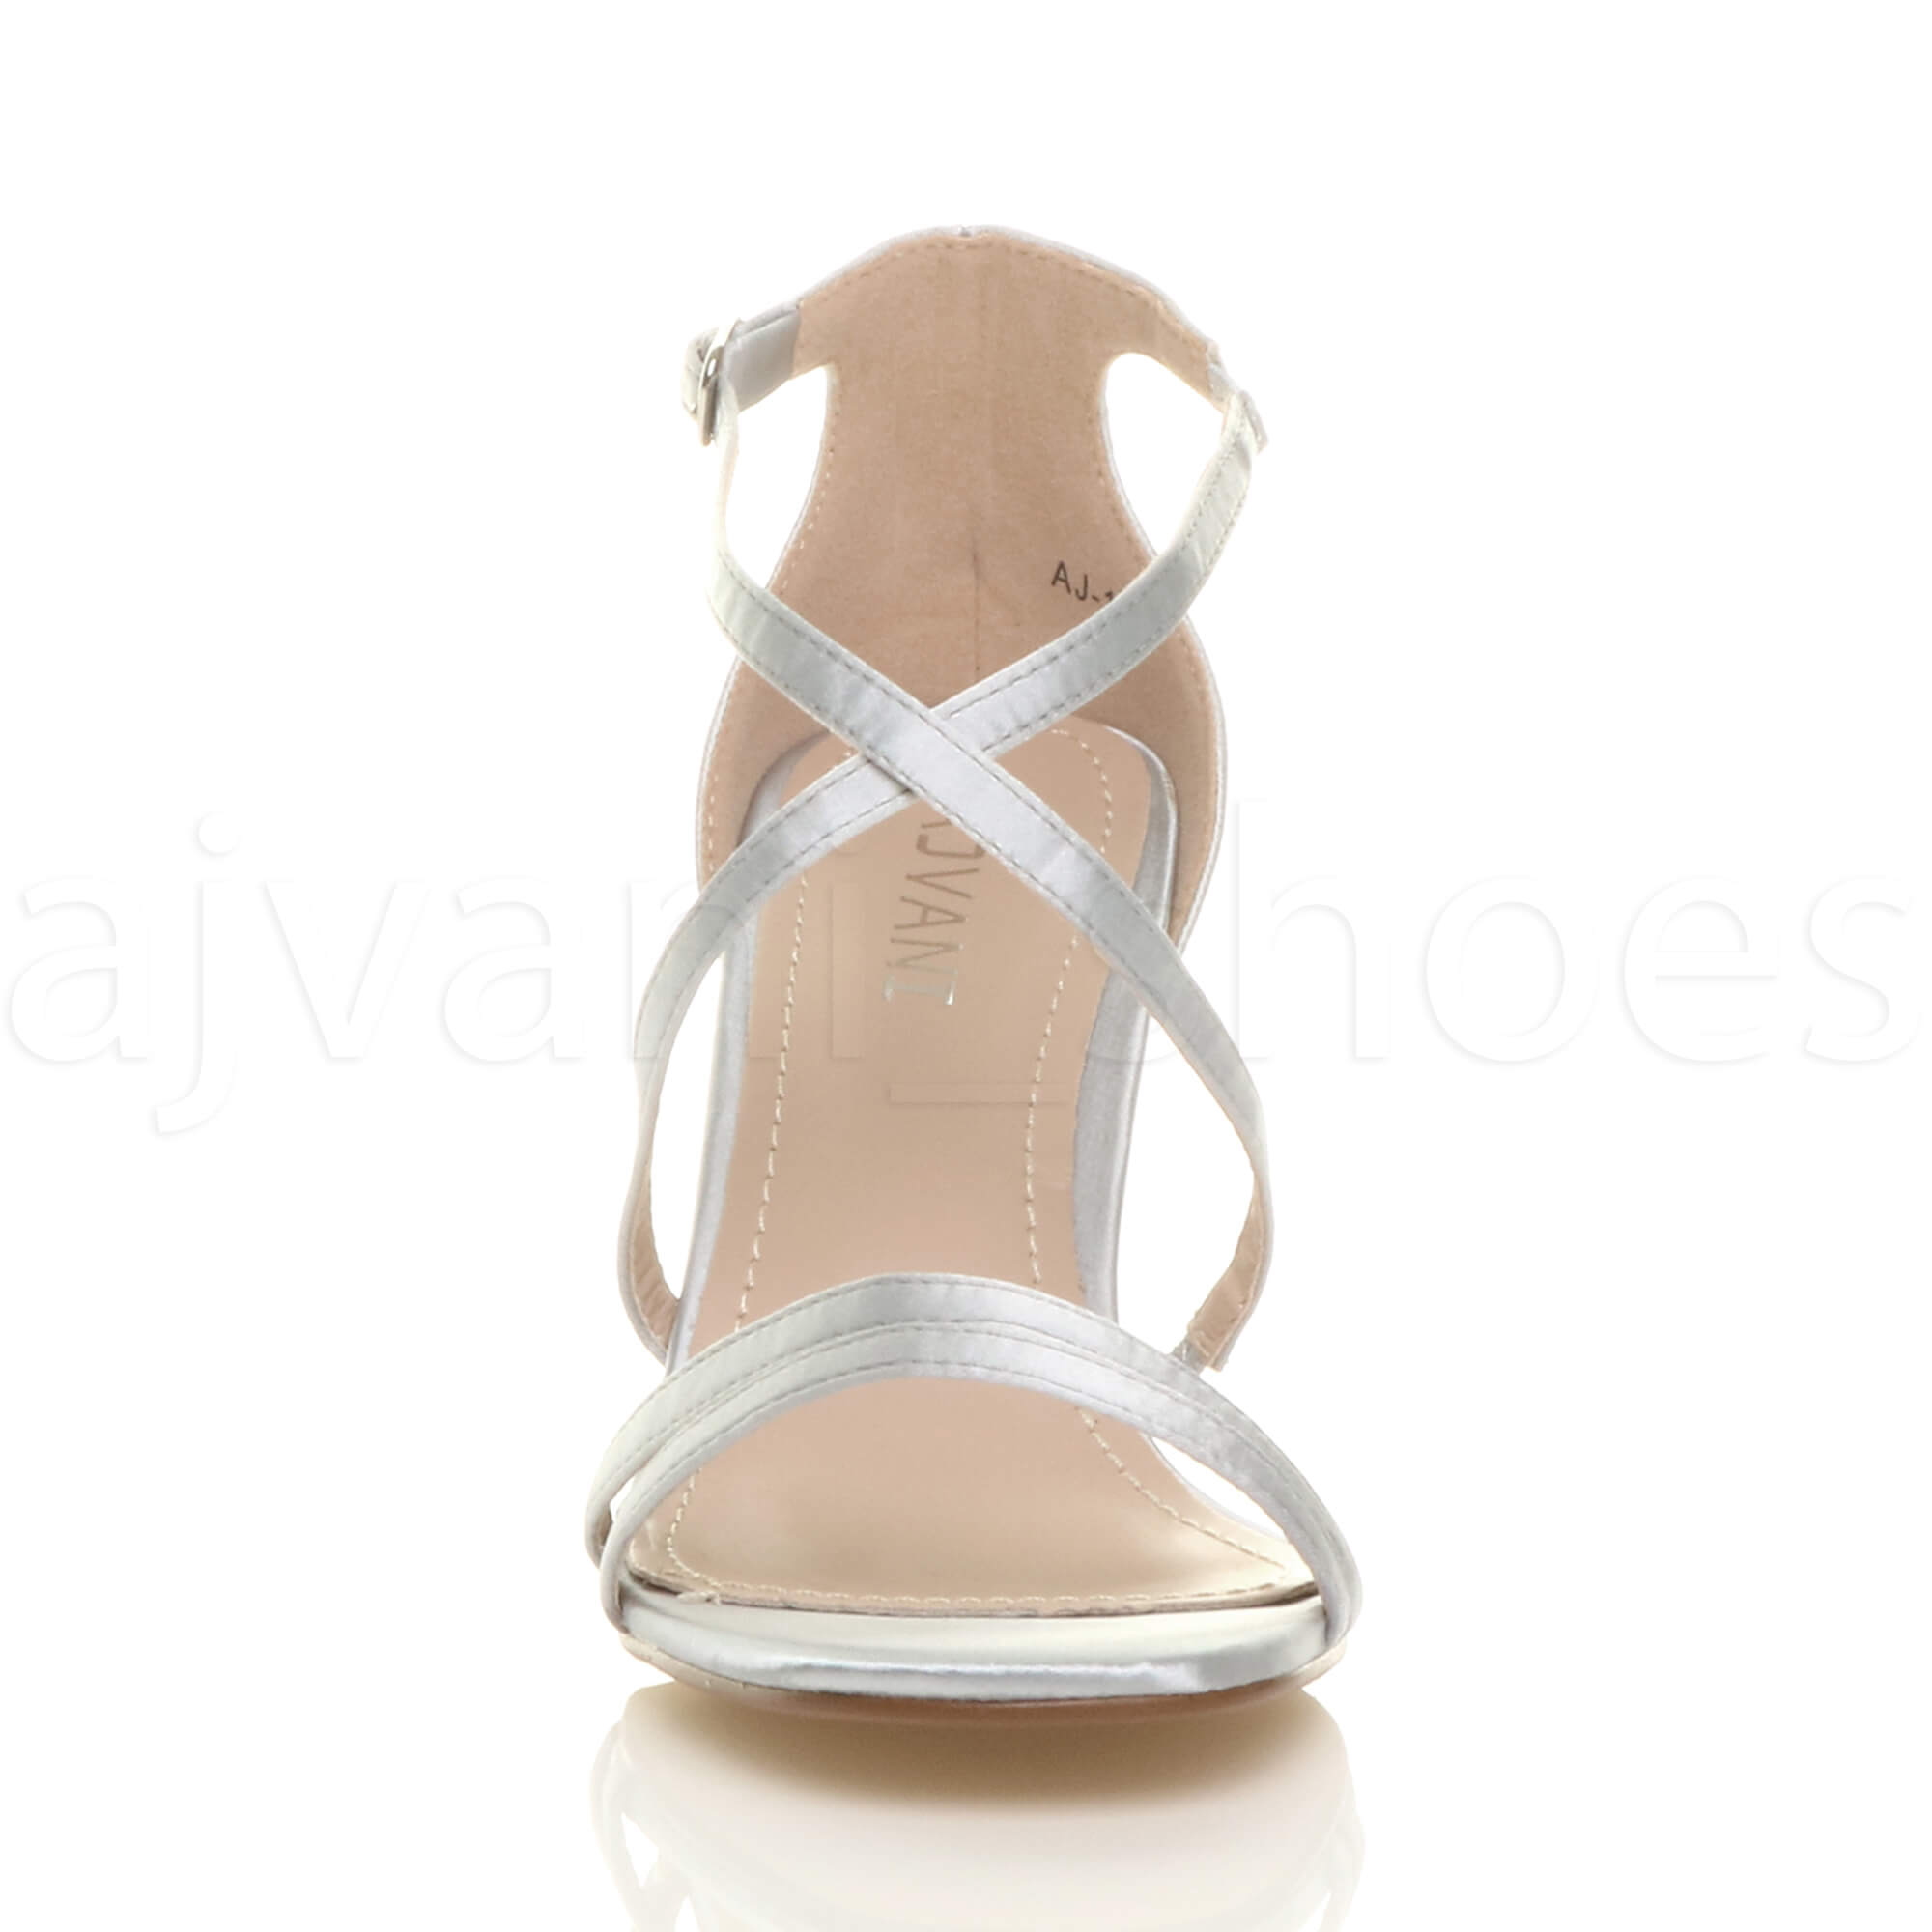 WOMENS-LADIES-MID-HIGH-HEEL-STRAPPY-CROSSOVER-WEDDING-PROM-SANDALS-SHOES-SIZE thumbnail 160